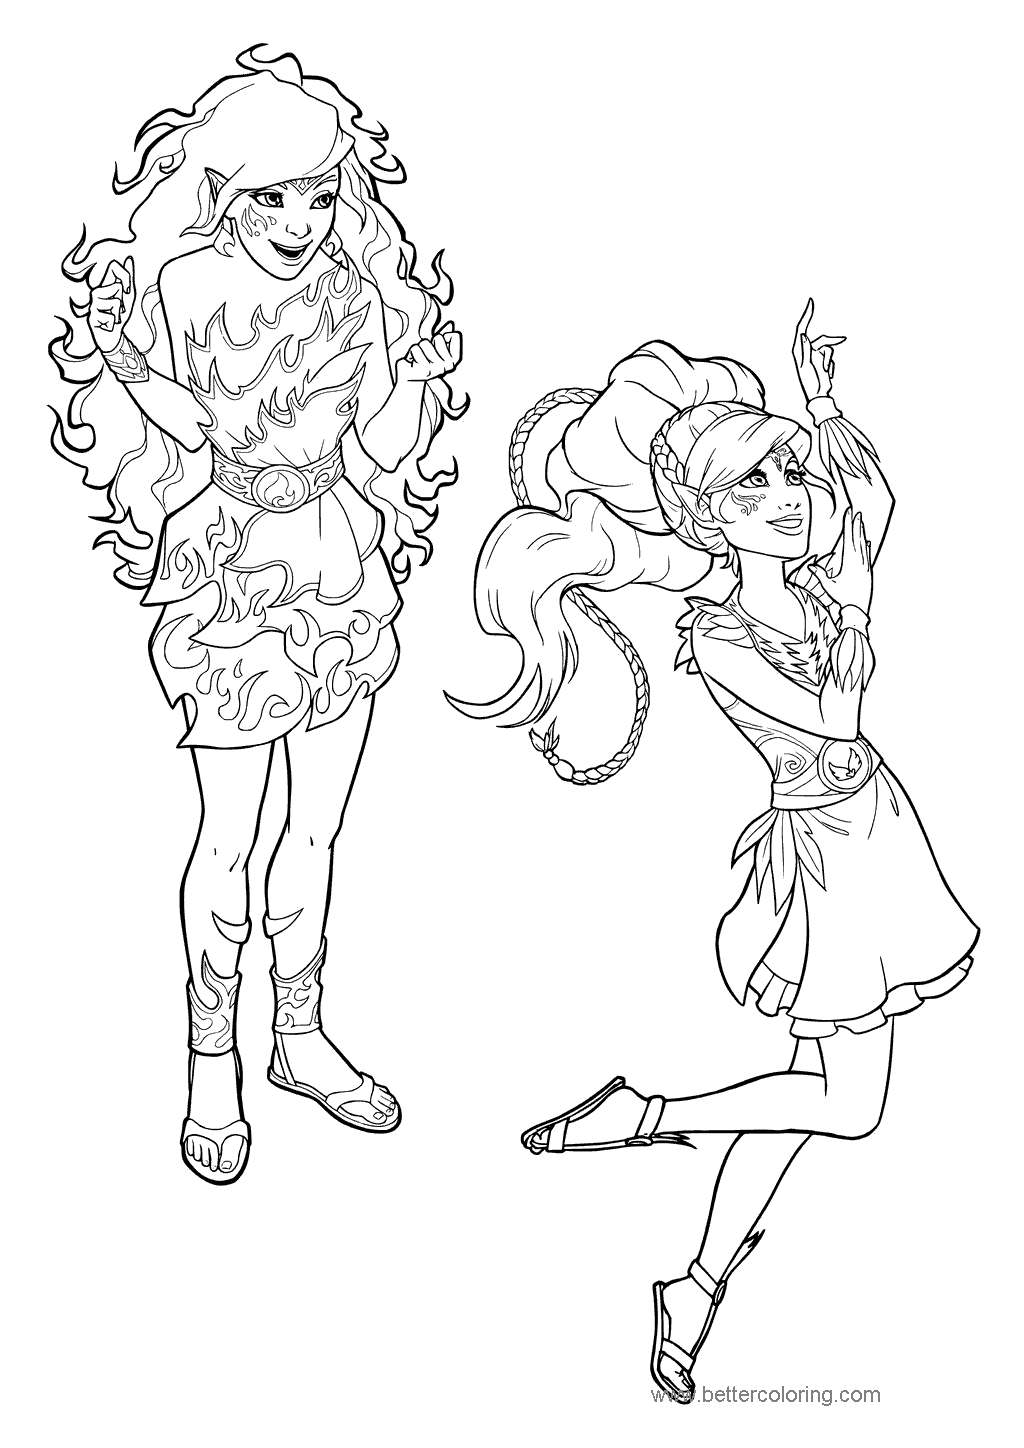 Free Two Girl Elves Coloring Pages printable